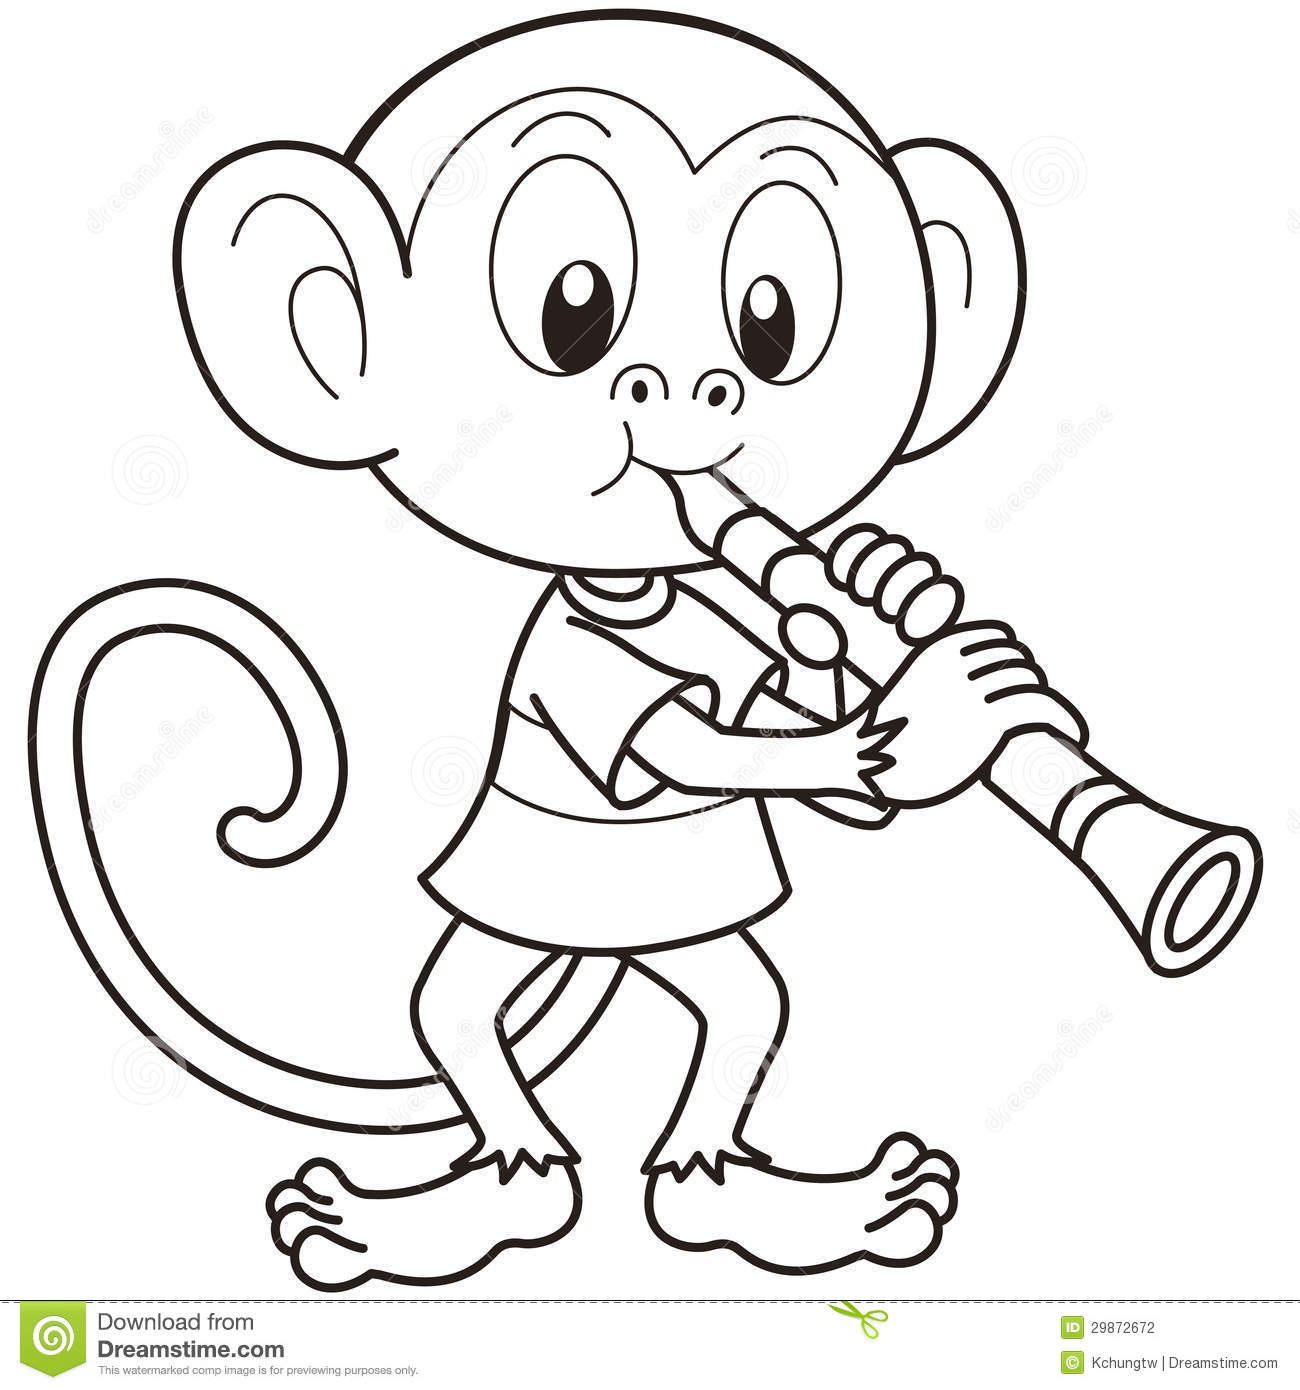 Cartoon monkey playing a clarinet black and white